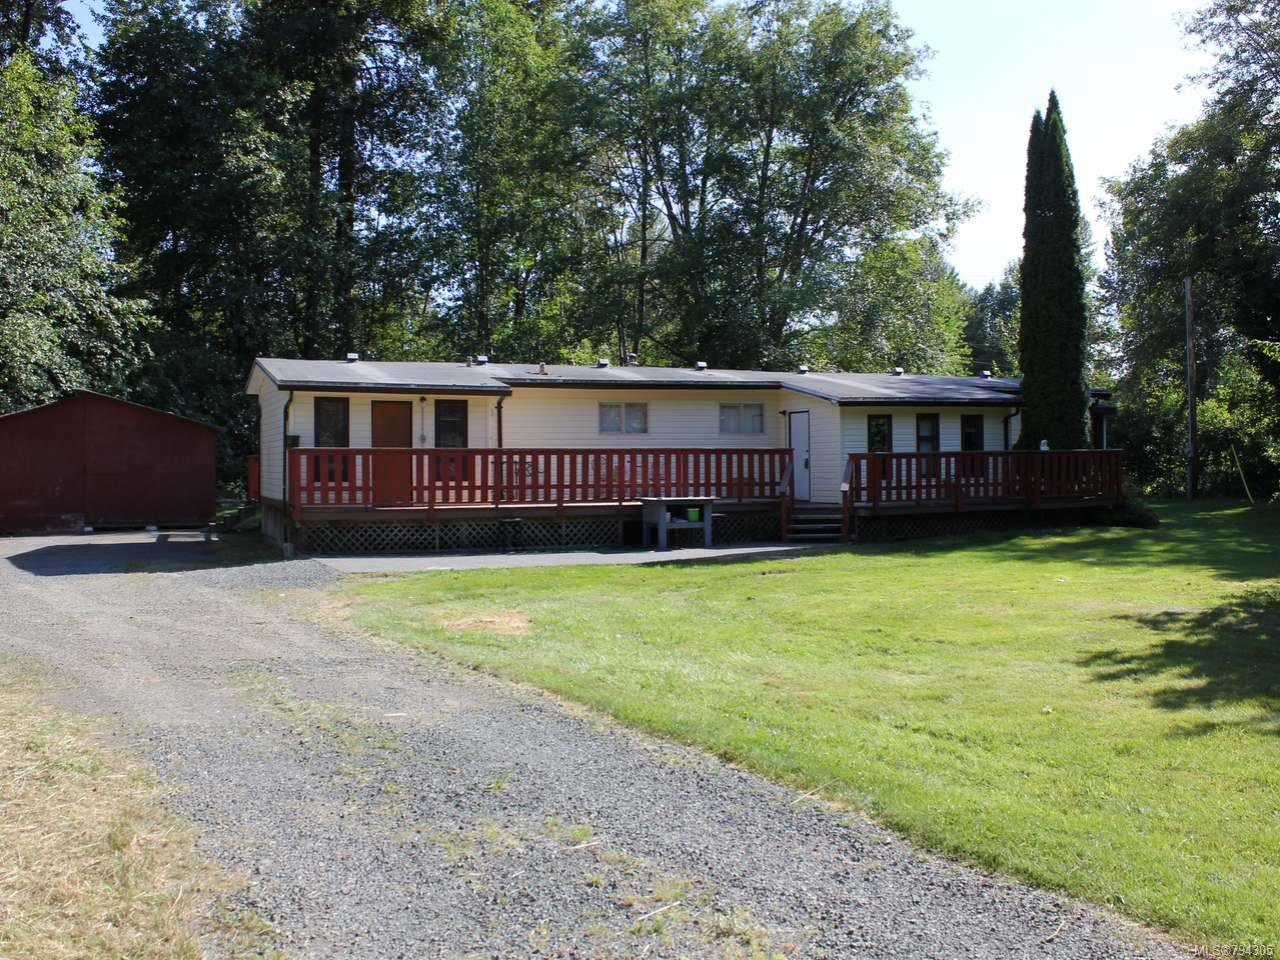 Main Photo: 9315 DOYLE ROAD in BLACK CREEK: CV Merville Black Creek Manufactured Home for sale (Comox Valley)  : MLS®# 794305